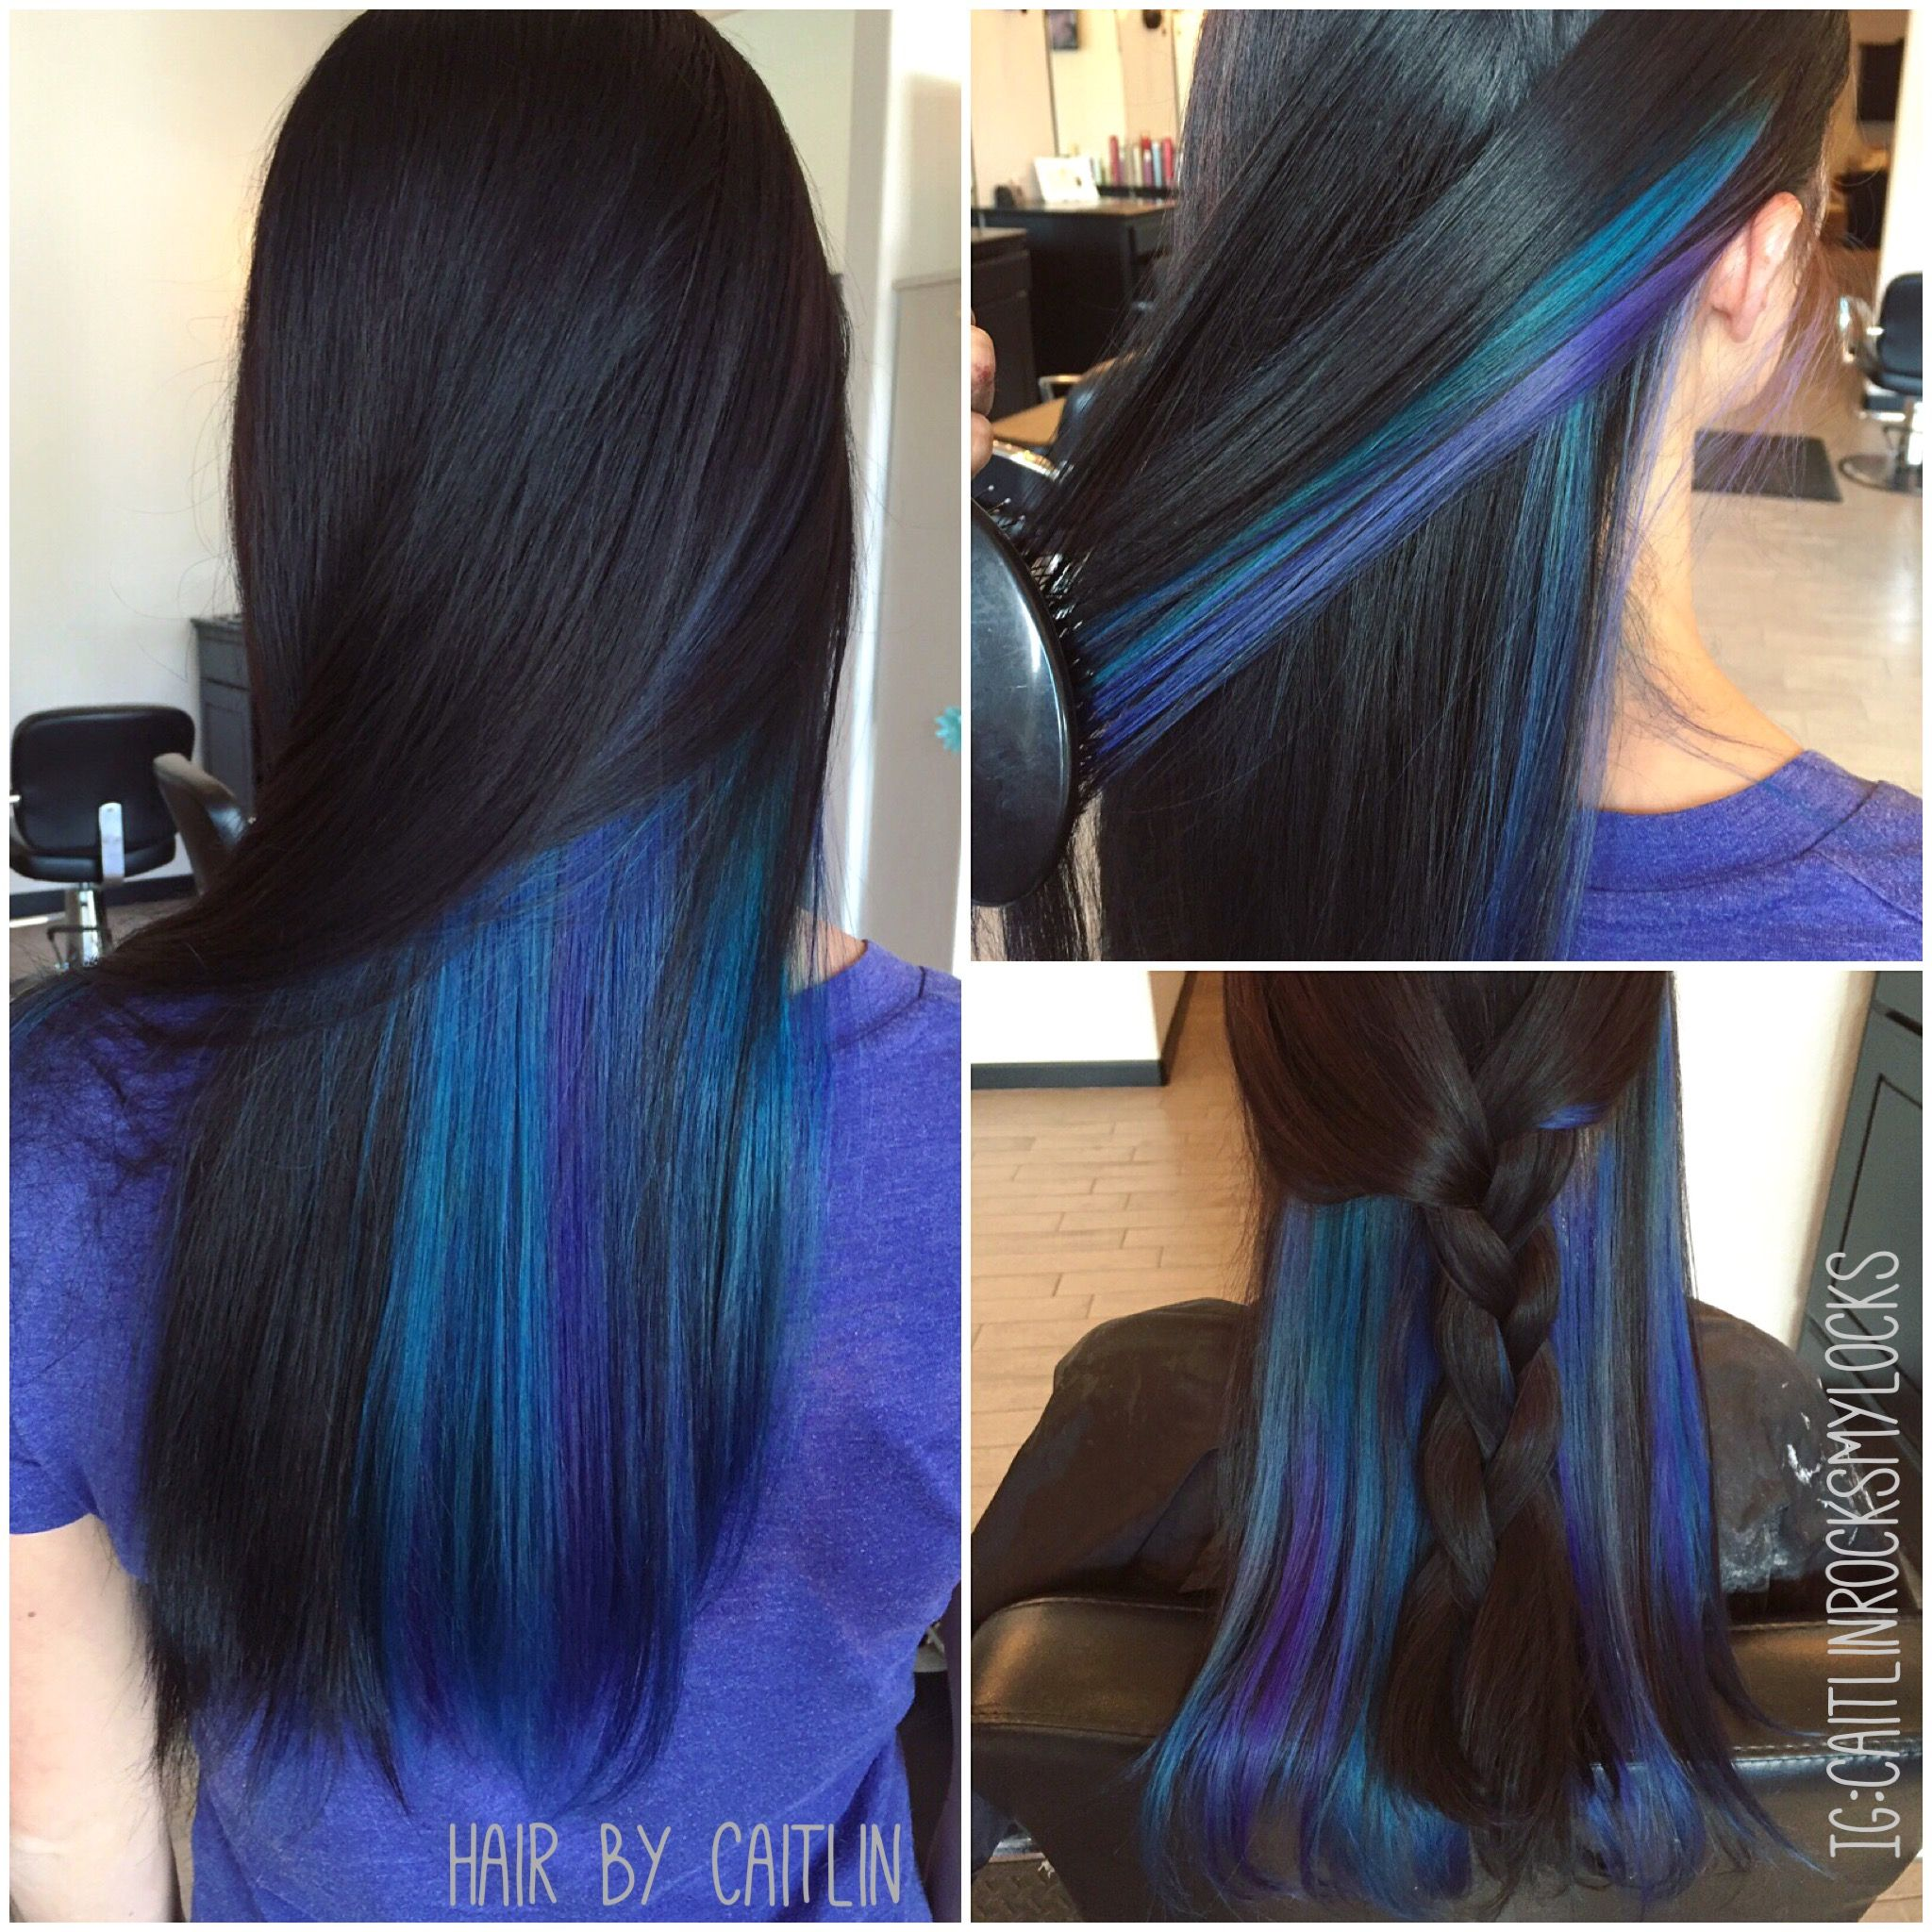 Lila Blaue Haare Underlights Purple And Blue Hair Peacock Hair Galaxy